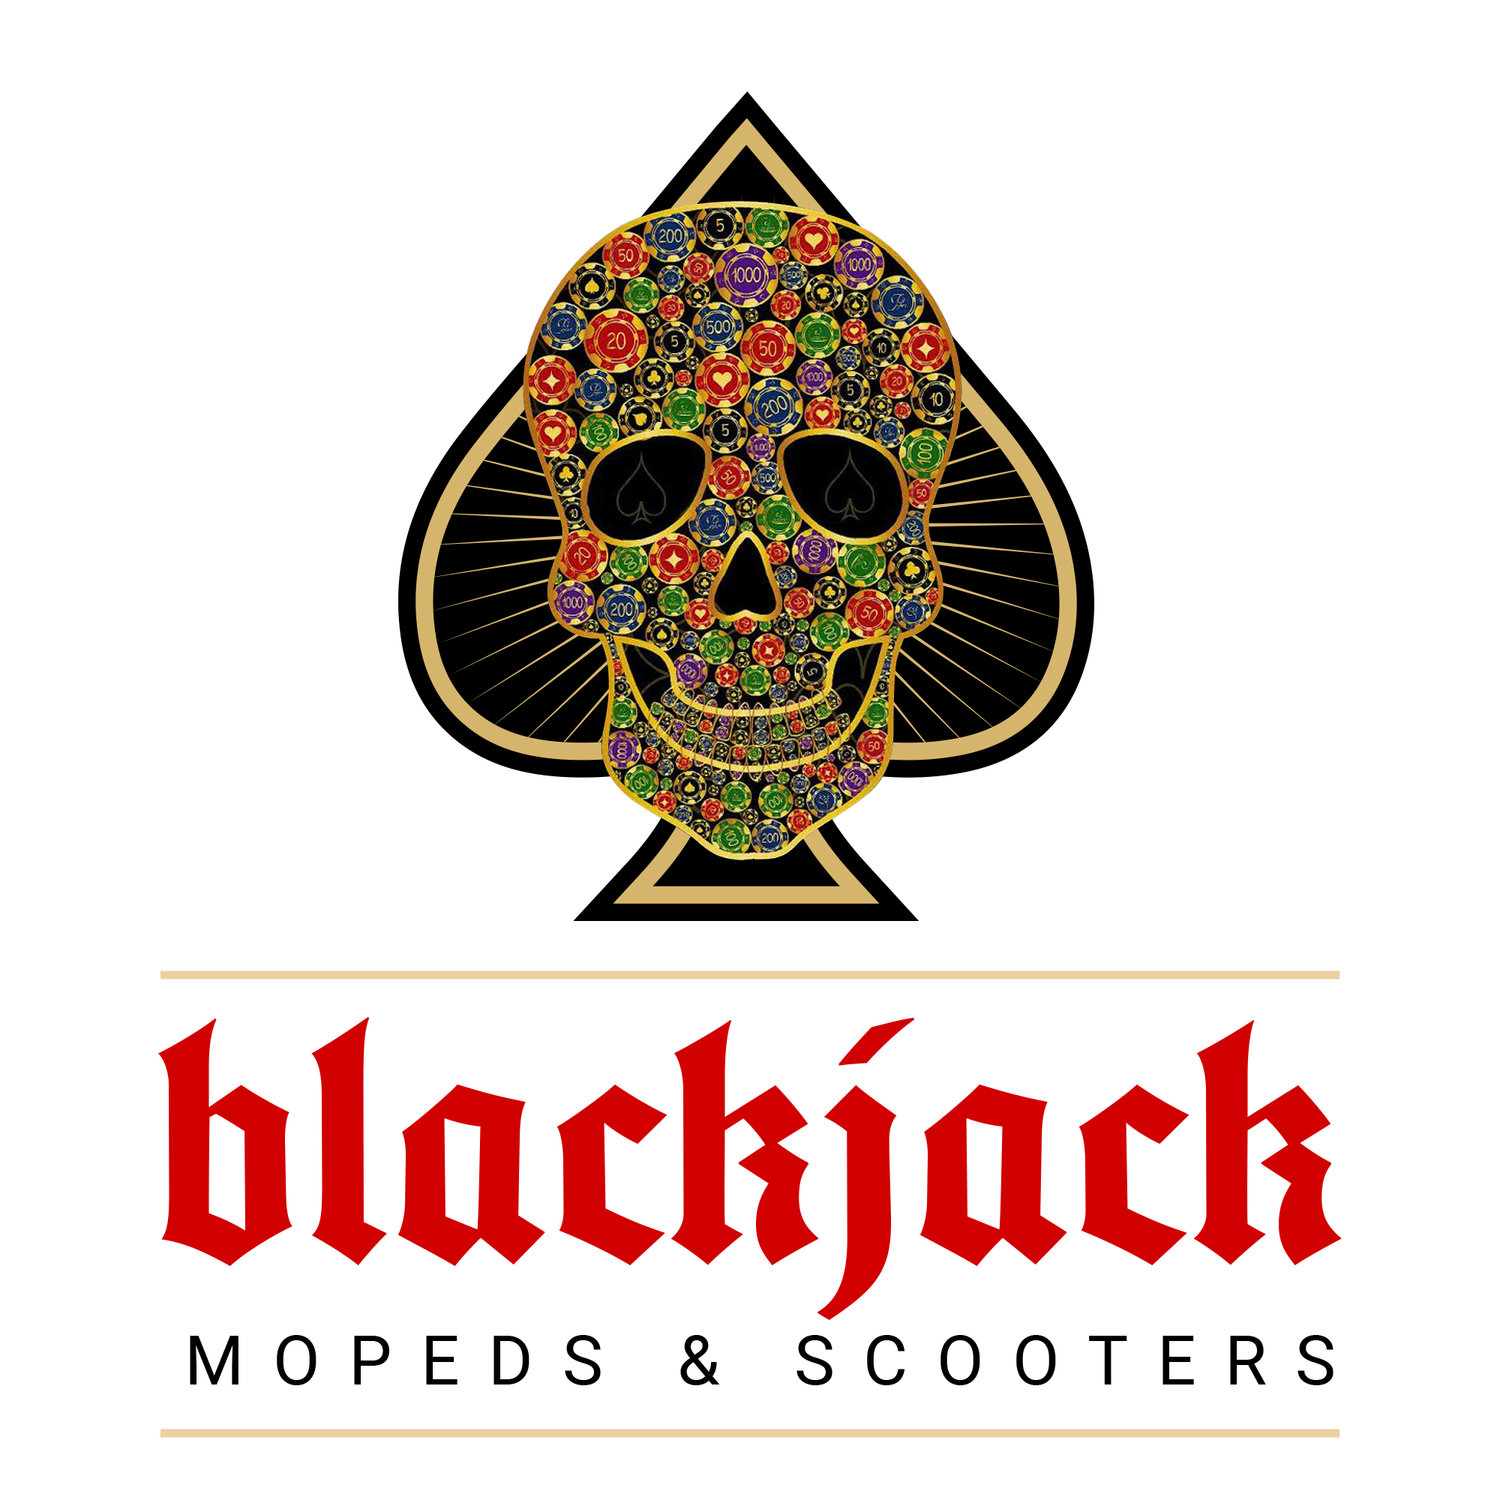 Blackjack Mopeds & Scooters